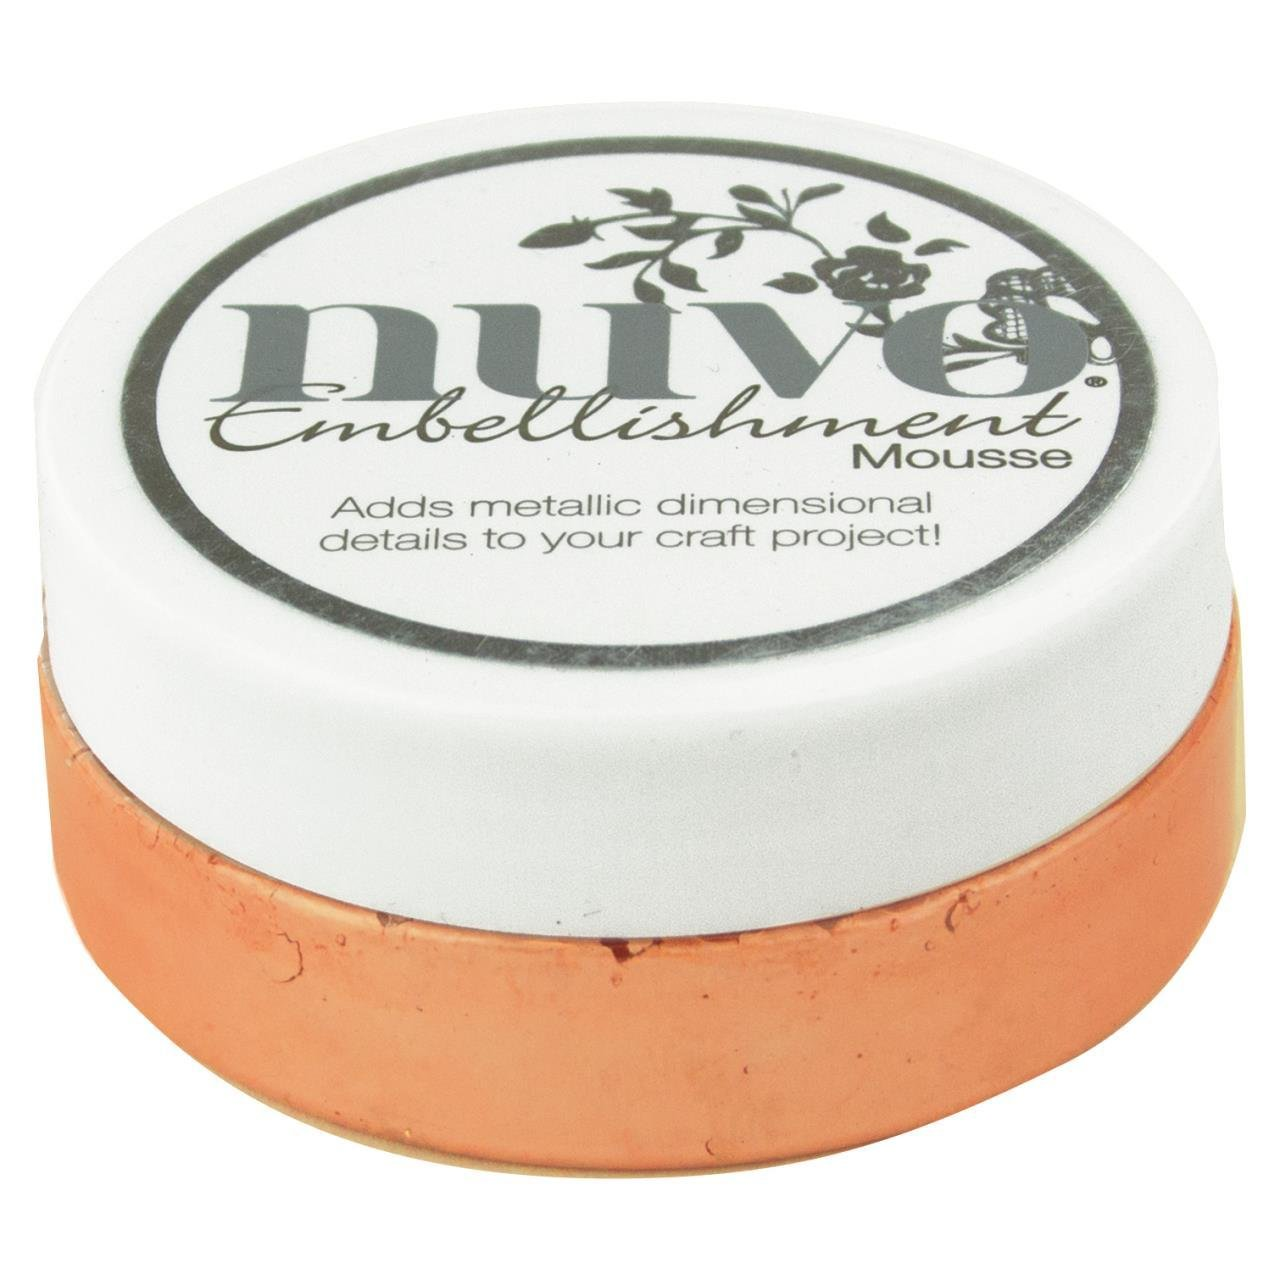 Nuvo Embellishment Mousse-Coral Calypso